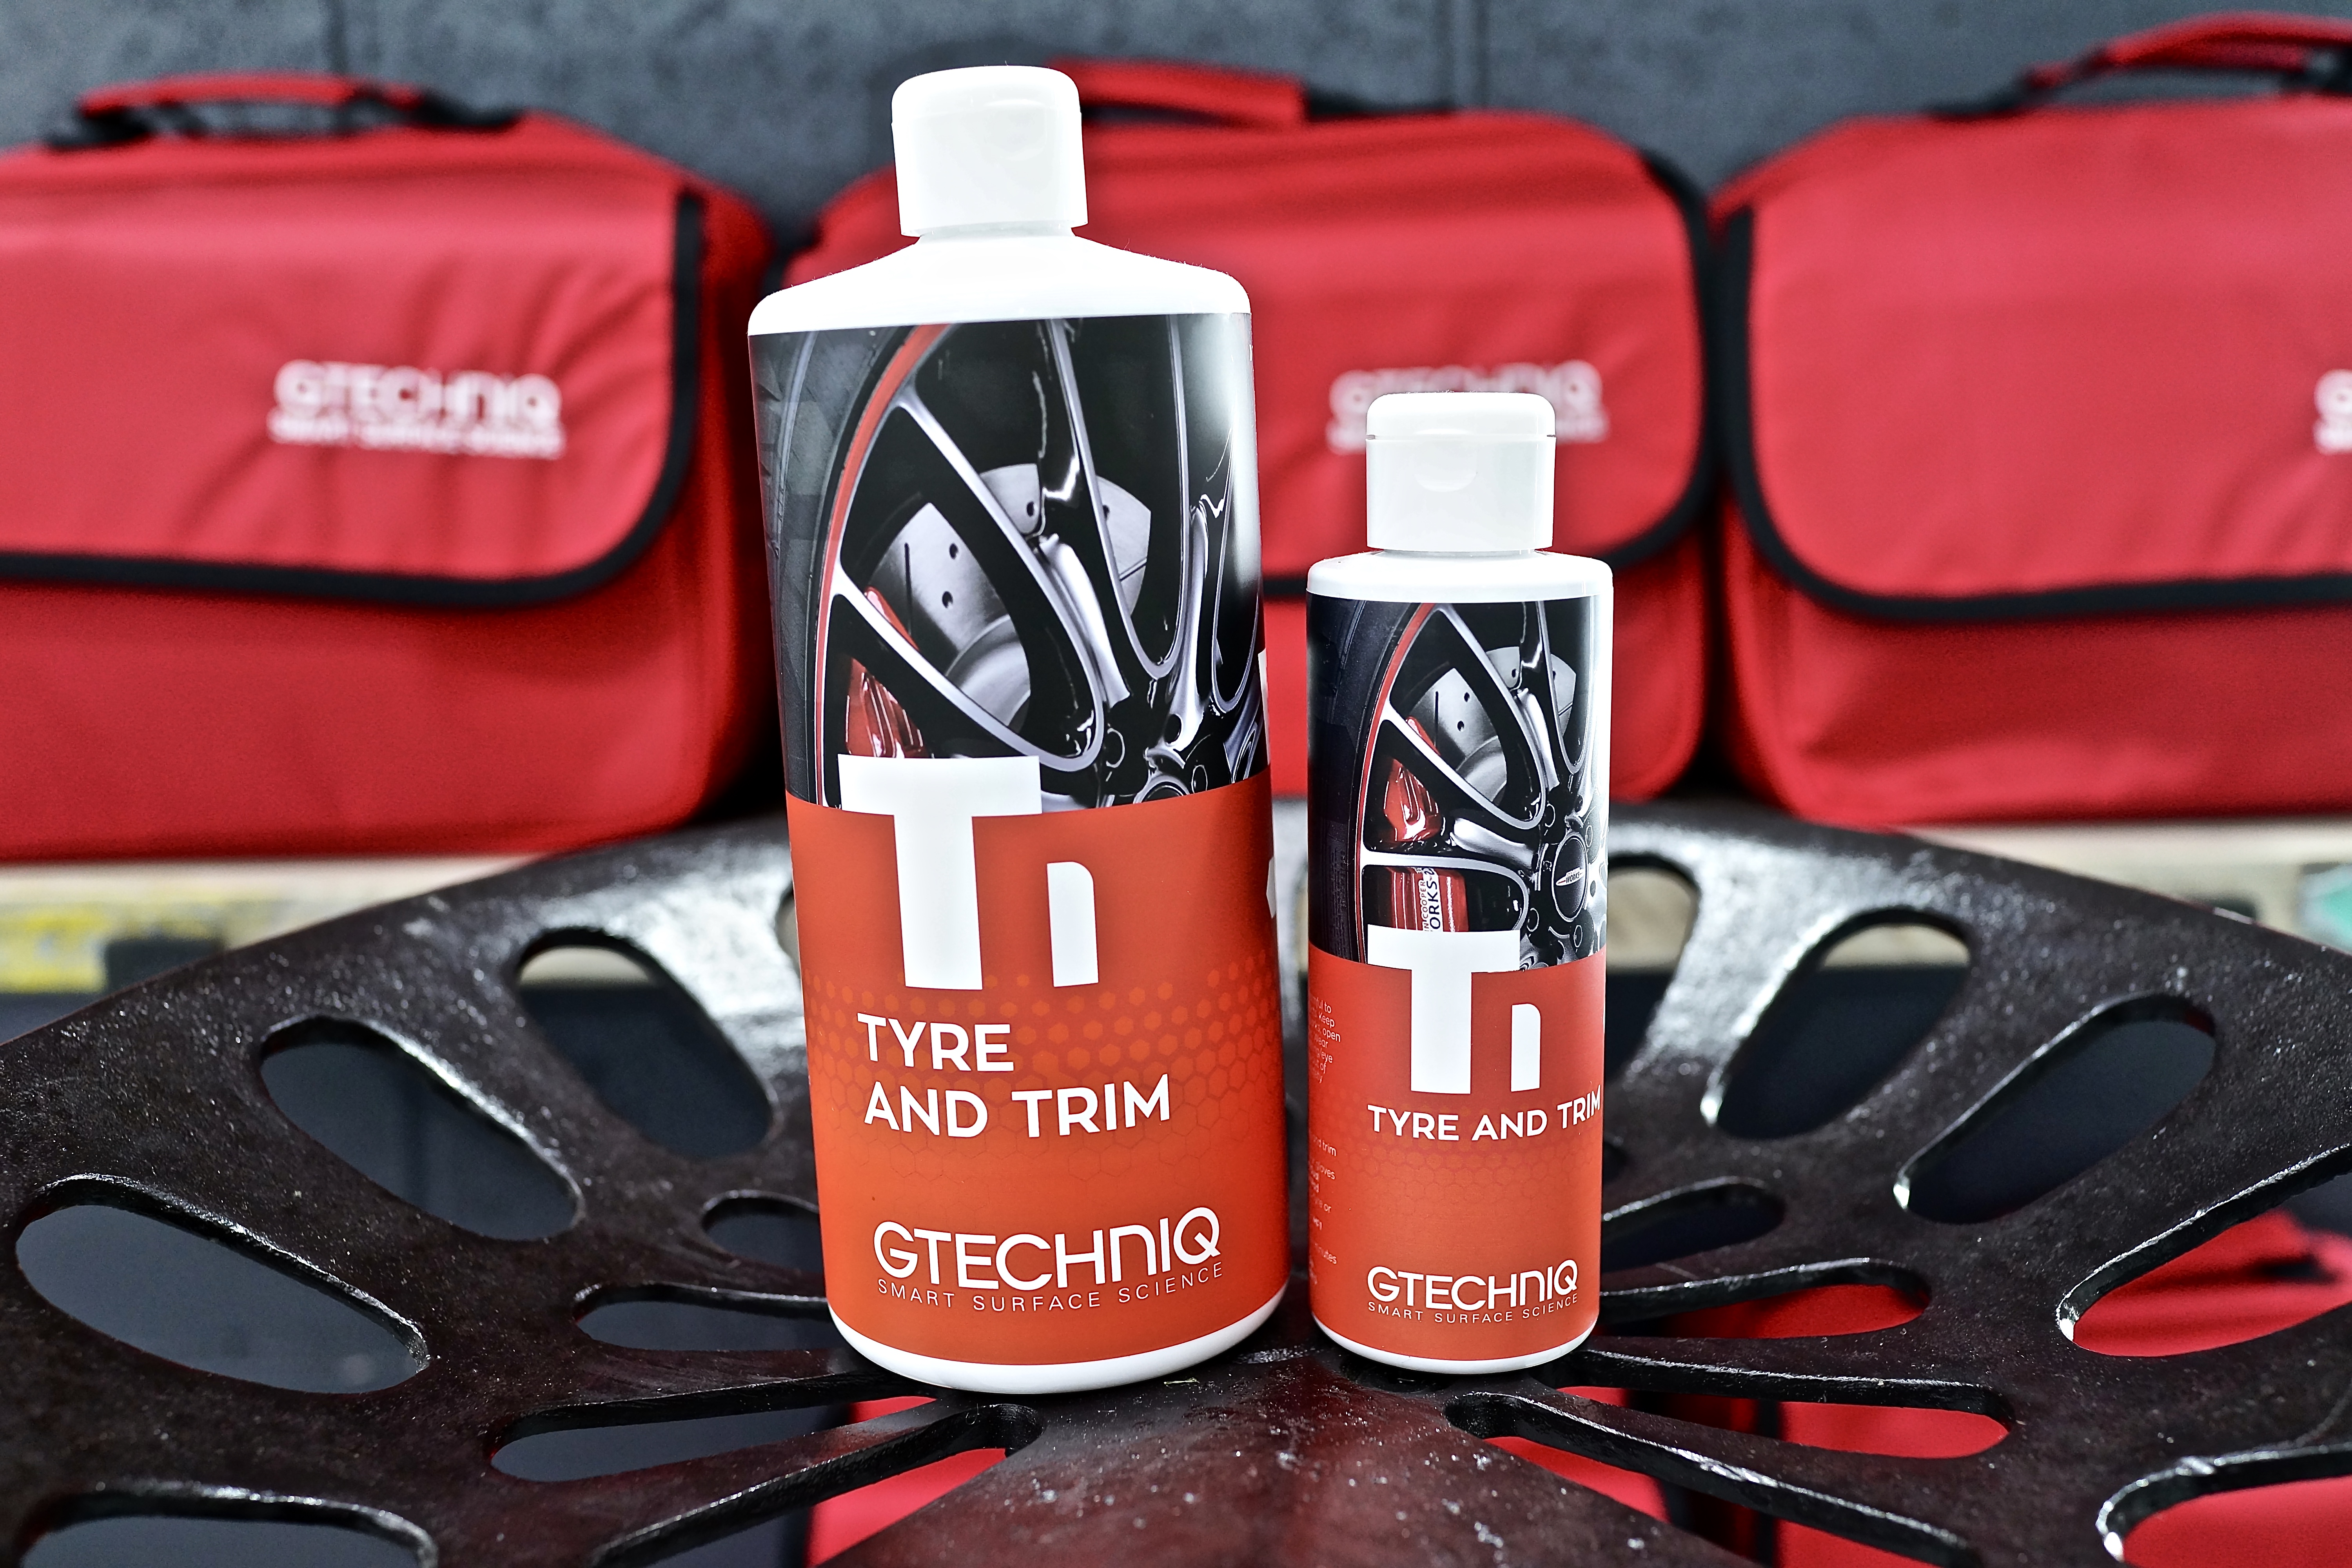 Gtechniq T1 Tyre and Trim Cleaner